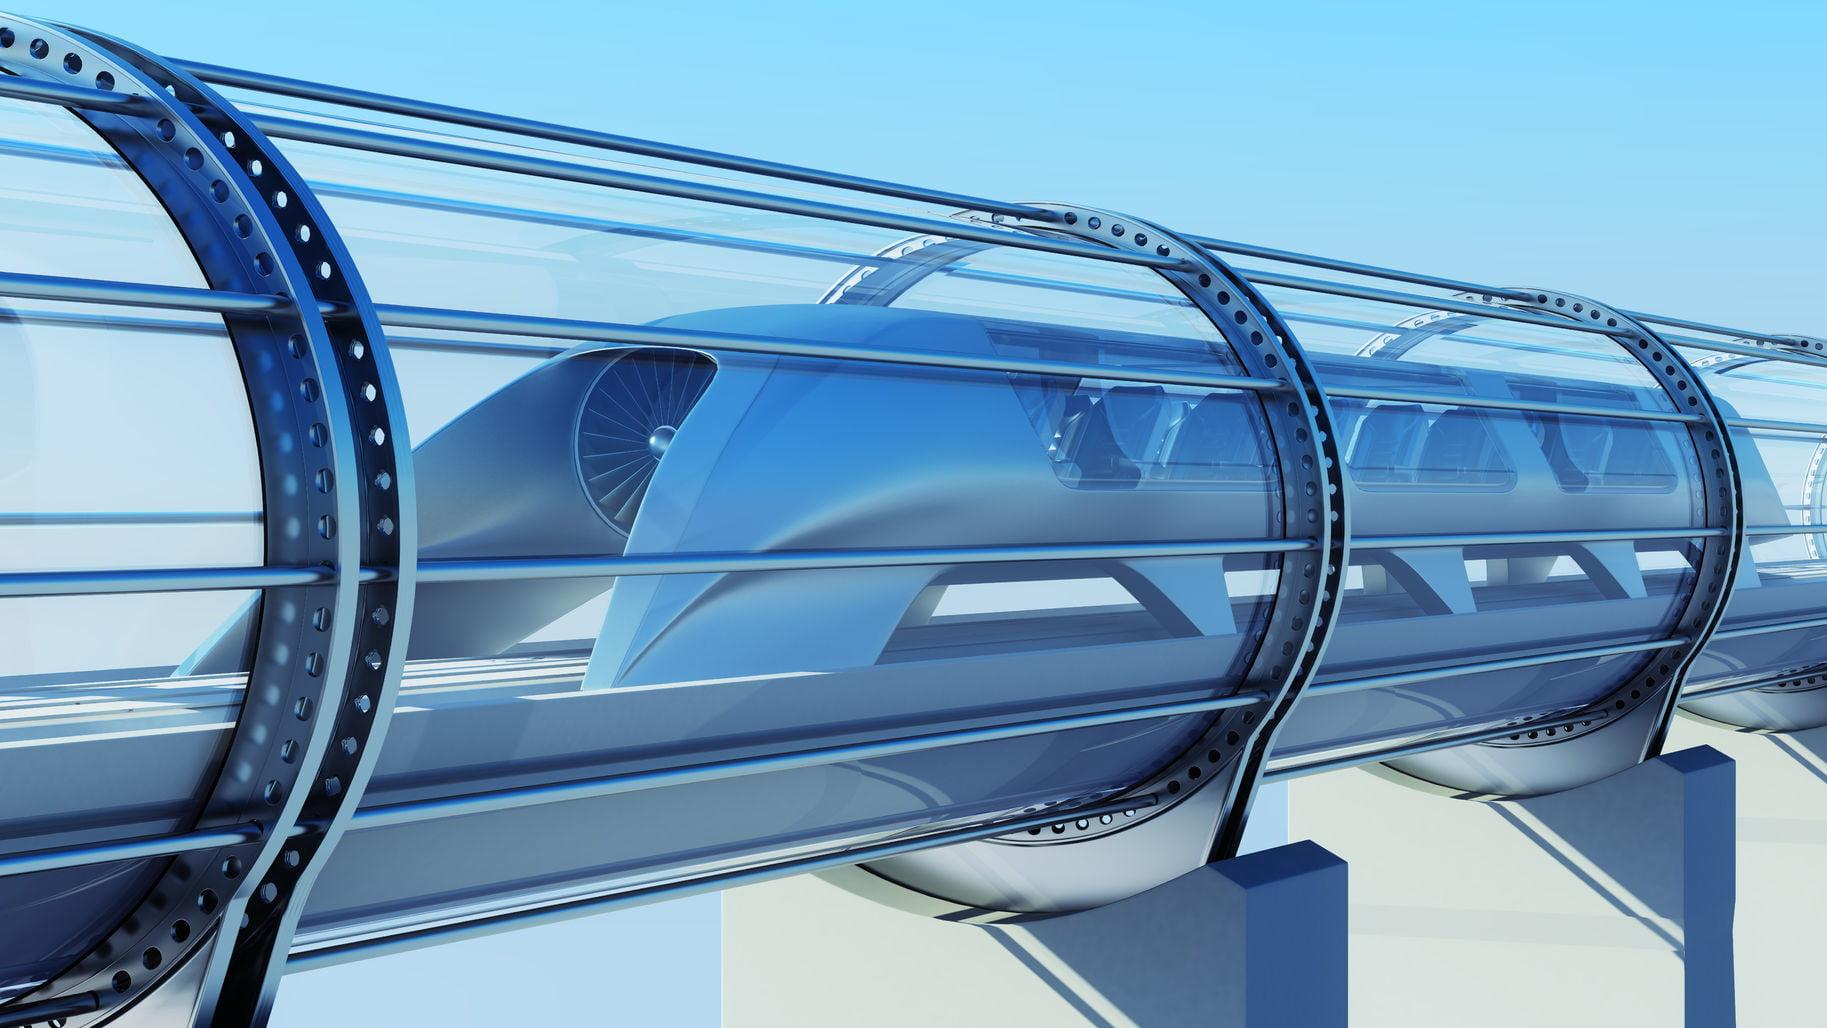 Hyperloop transportation routes could soon be running from Cleveland to Chicago